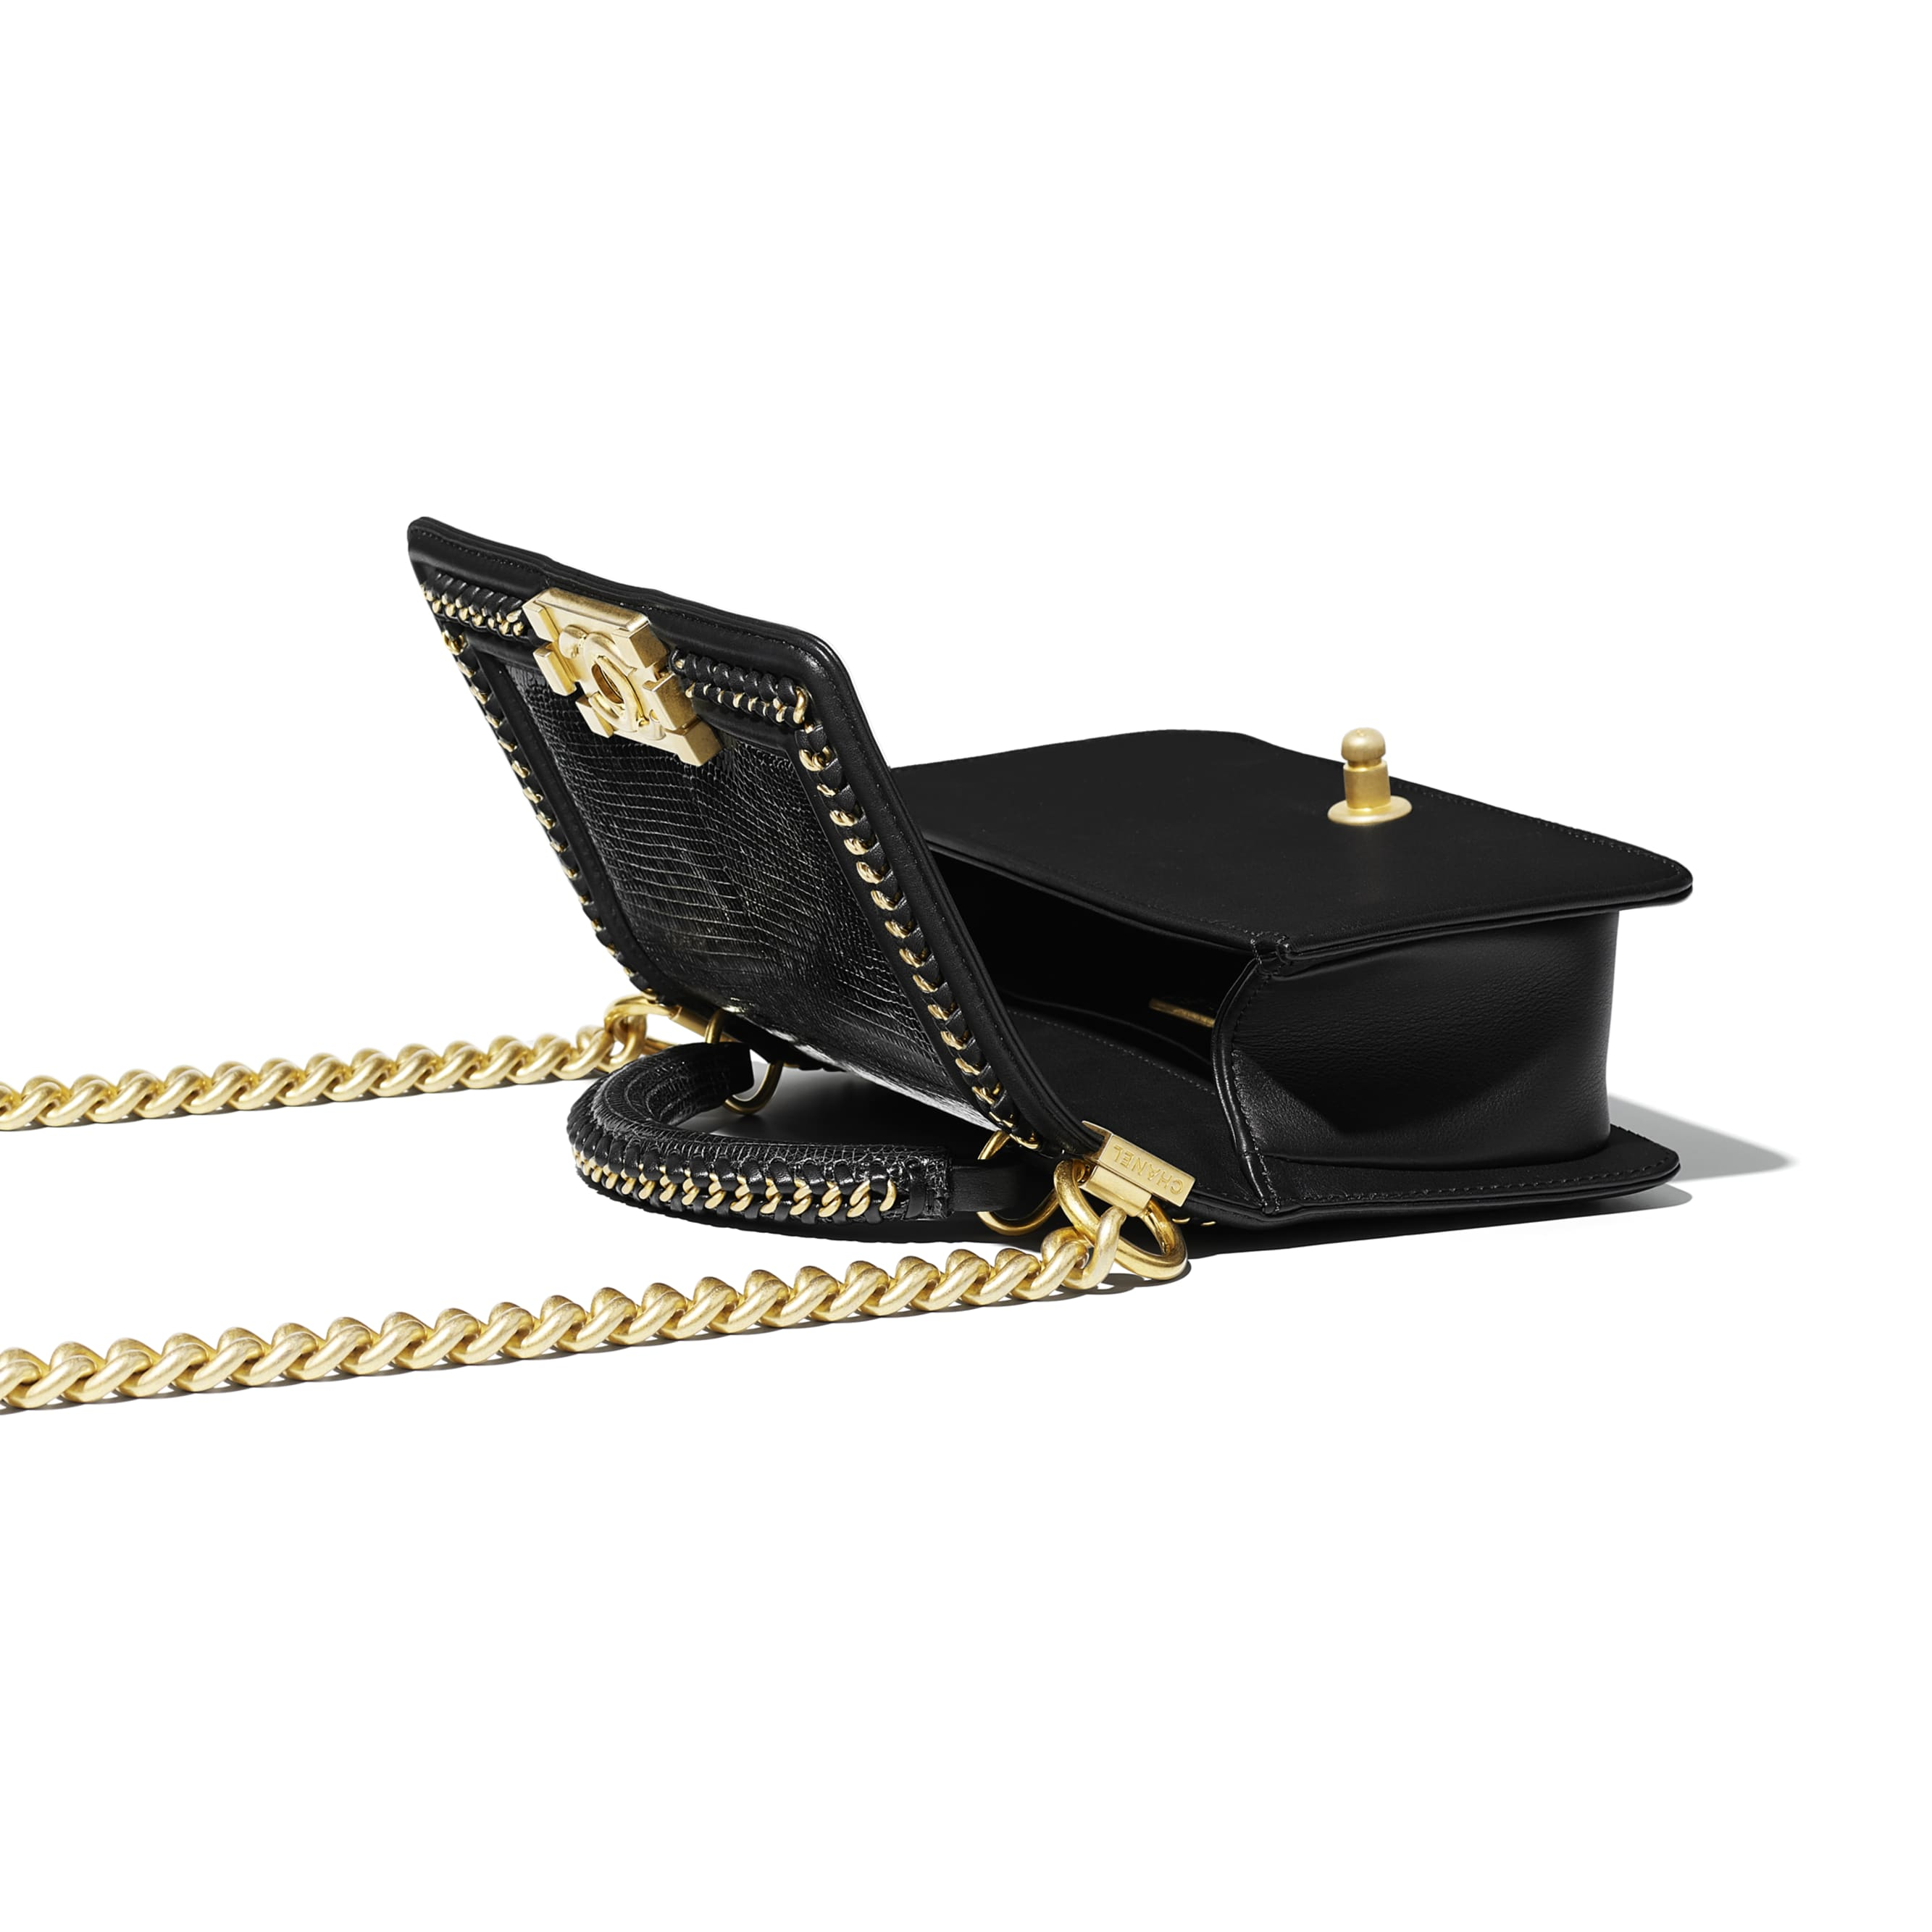 BOY CHANEL Flap Bag with Handle - Black - Lizard, Calfskin & Gold-Tone Metal - Other view - see standard sized version